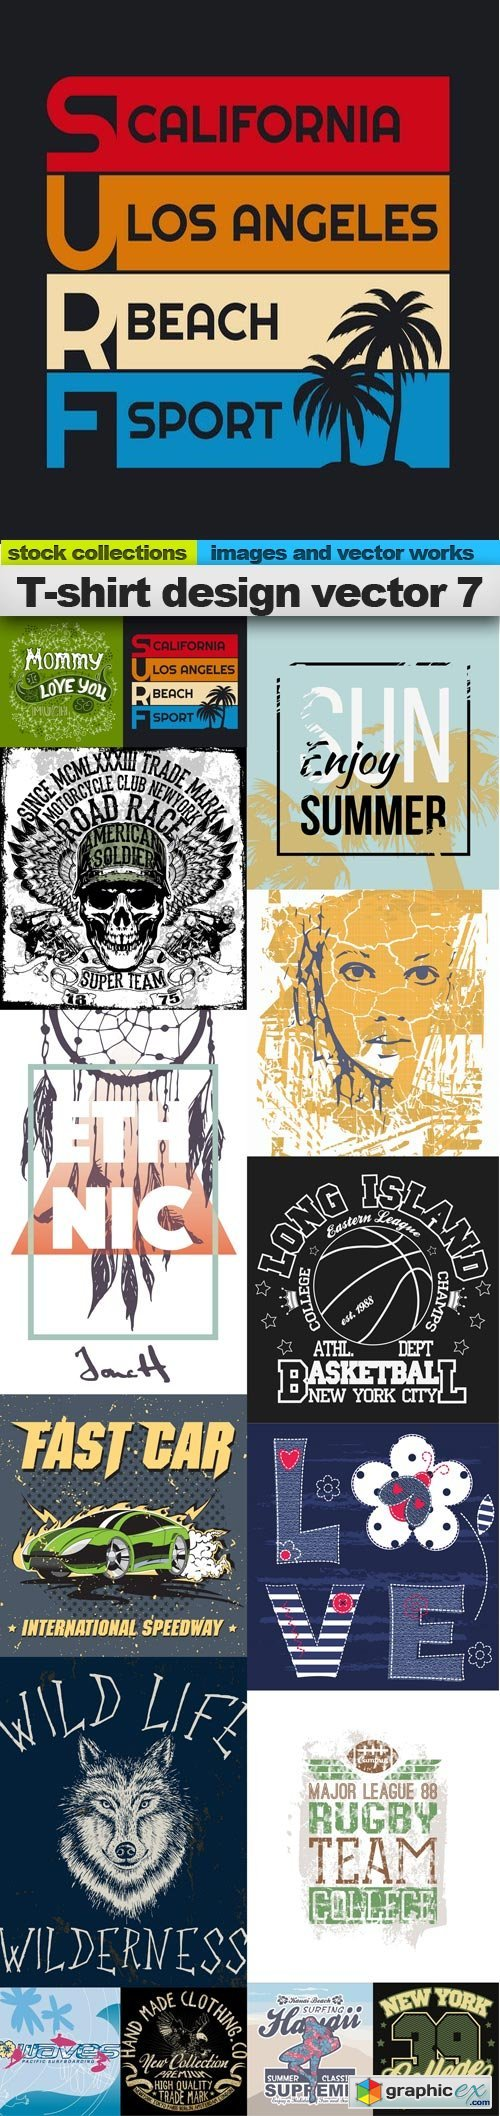 T-shirt design vector 7, 15 x EPS